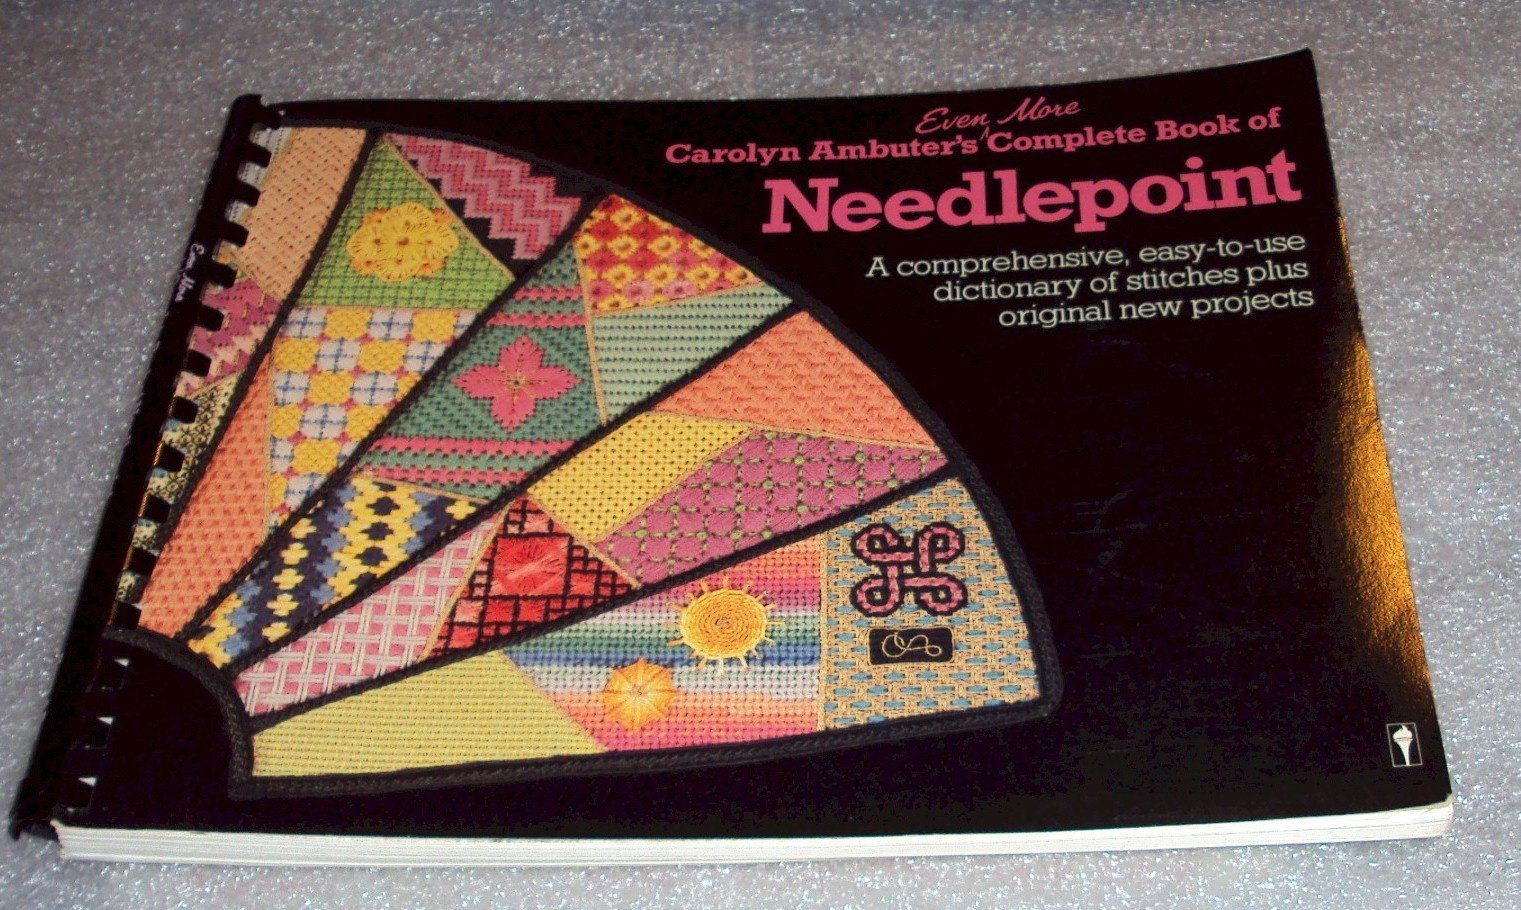 Carolyn Ambuter's Even More Complete Book of Needlepoint